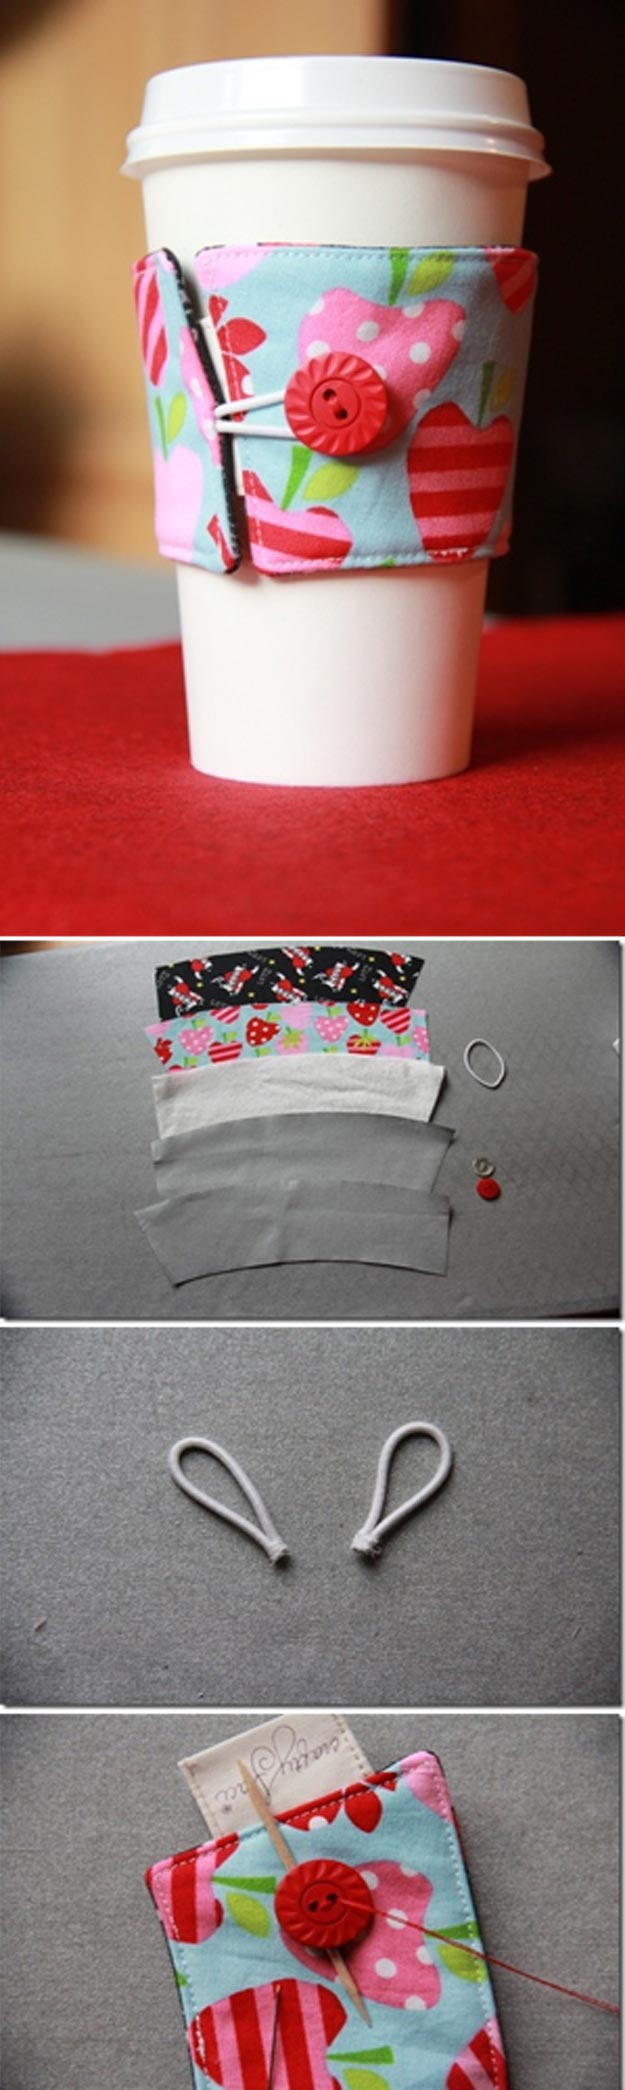 Cheap Crafts - Reversible Coffee Cup Sleeves - Inexpensive Craft Project Ideas for Teenagers, Teens and Adults - Easy DIY Ideas To Make On A Budget - Cool Dollar Store Crafts and Things You Can Make For Free - Homemade Wall Art and Room Decor, Gifts and Presents, Tutorials and Step by Step Instructions http://teencrafts.com/cheap-diy-crafts